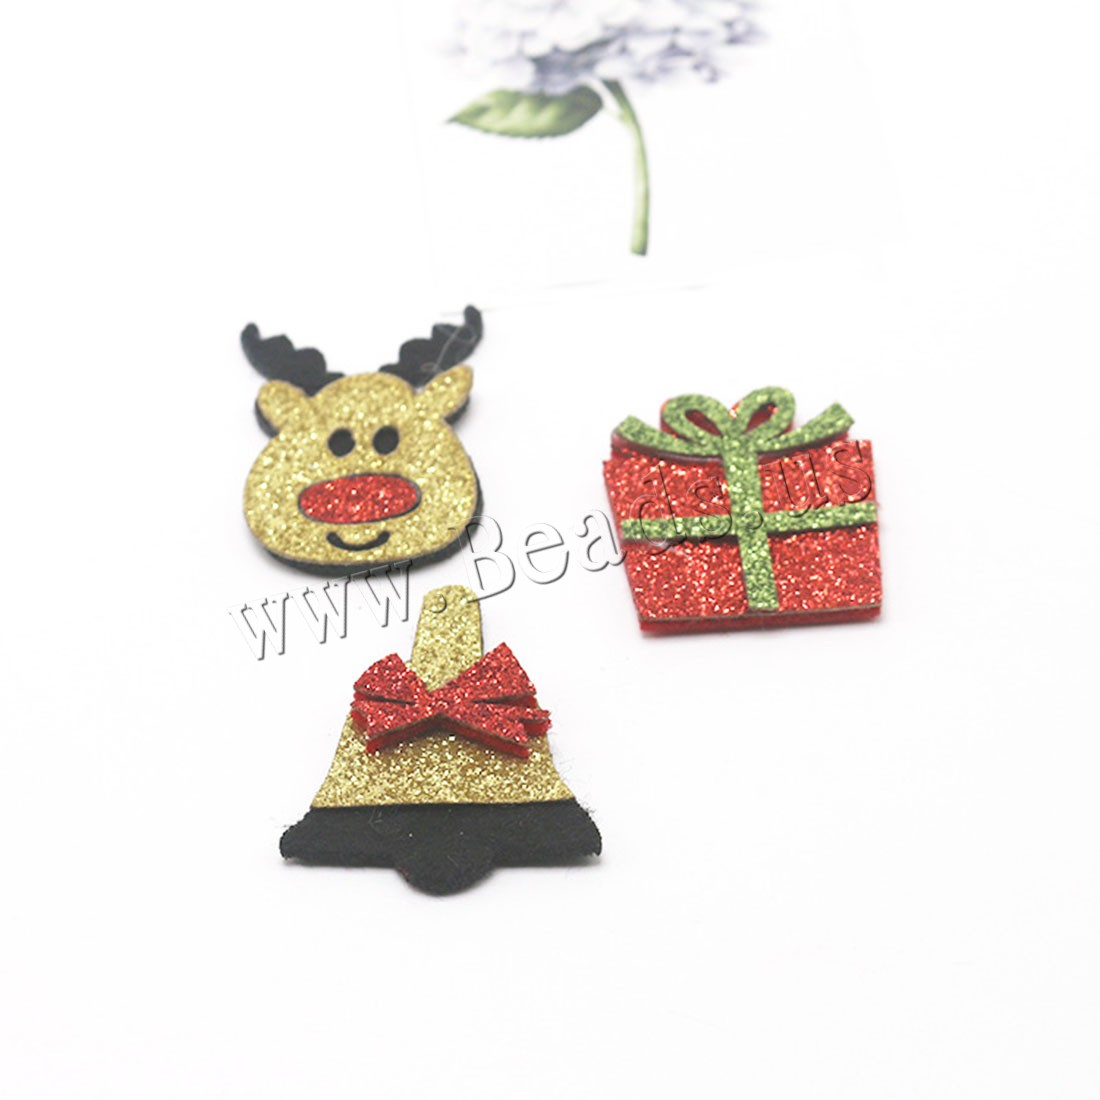 Buy Hair Accessories DIY Findings Non-woven Fabrics children & Christmas jewelry & different styles choice & colorful powder 25x40mm 31x37mm 30x35mm 5 Sold Lot